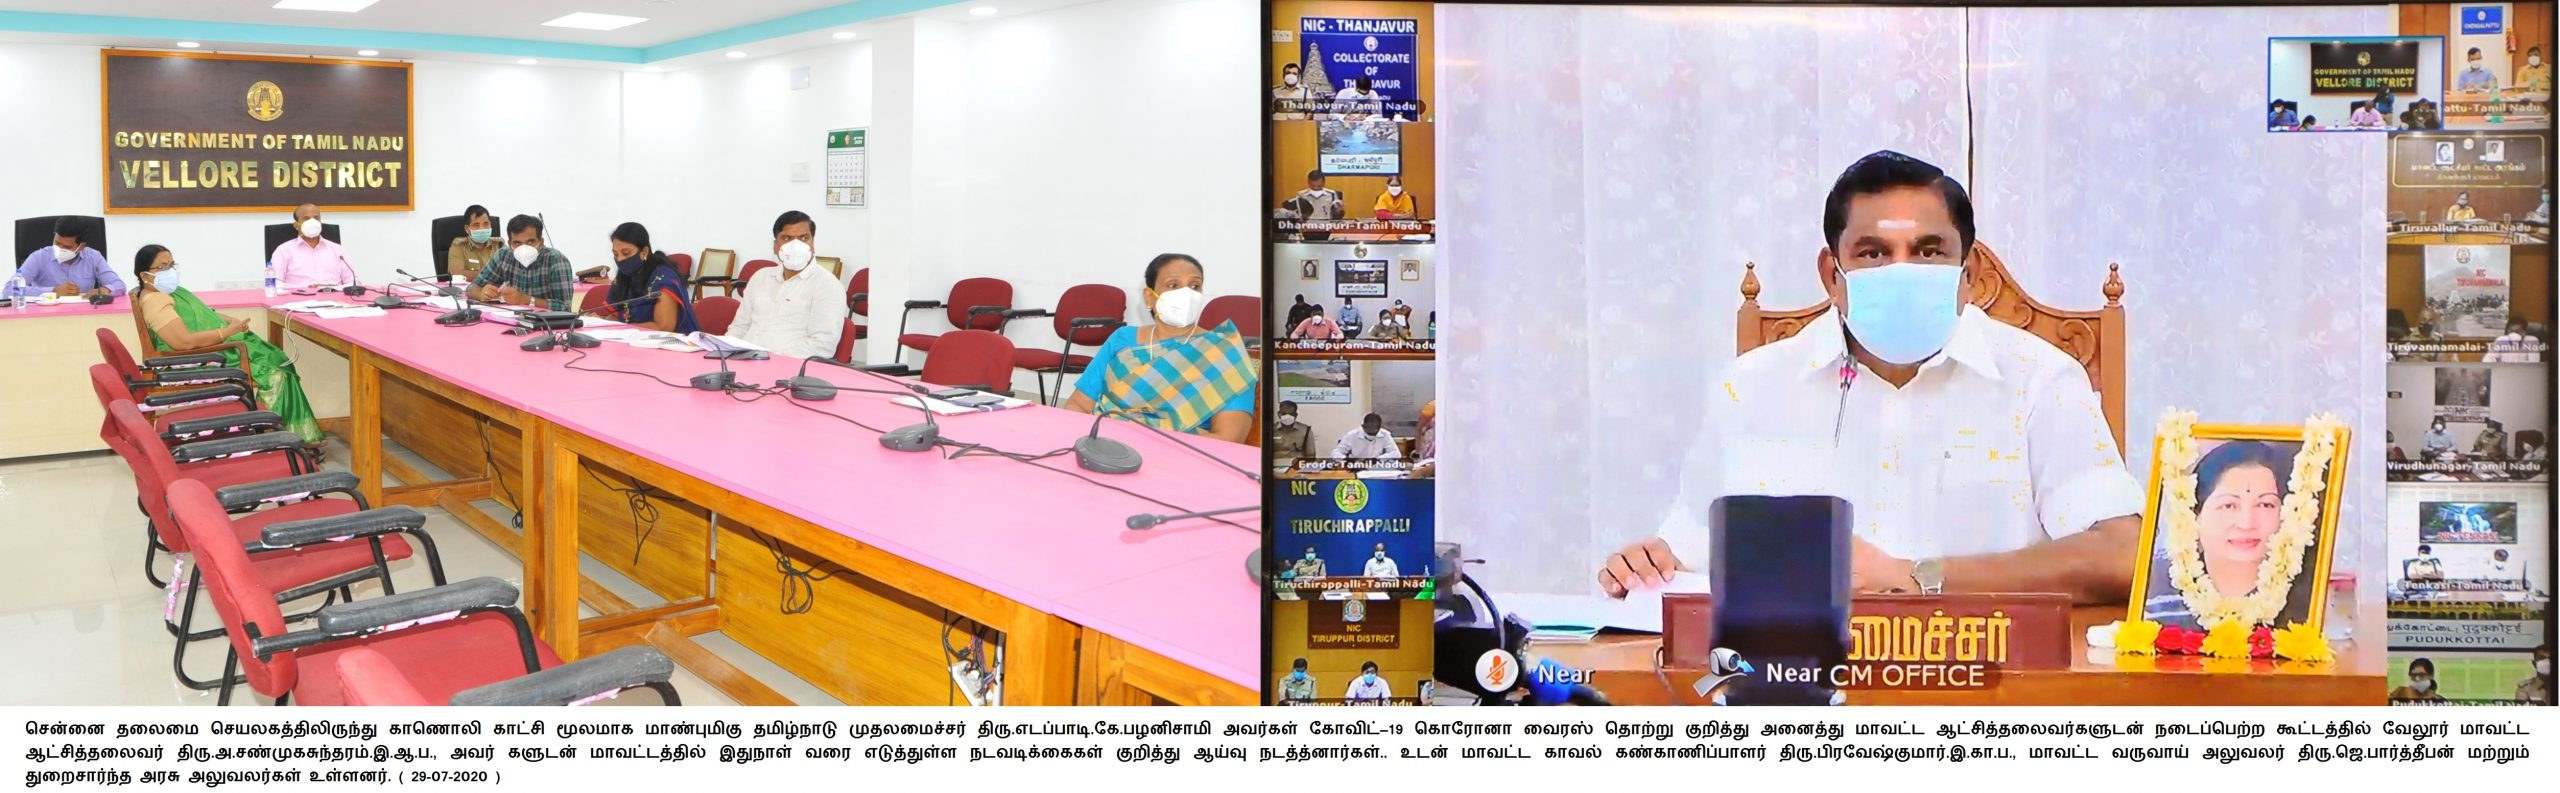 Corona Virus Preventive Methods Discussion through Video conference With Honorable Chief Minister Edapadi K.Palanisami 29-07-2020